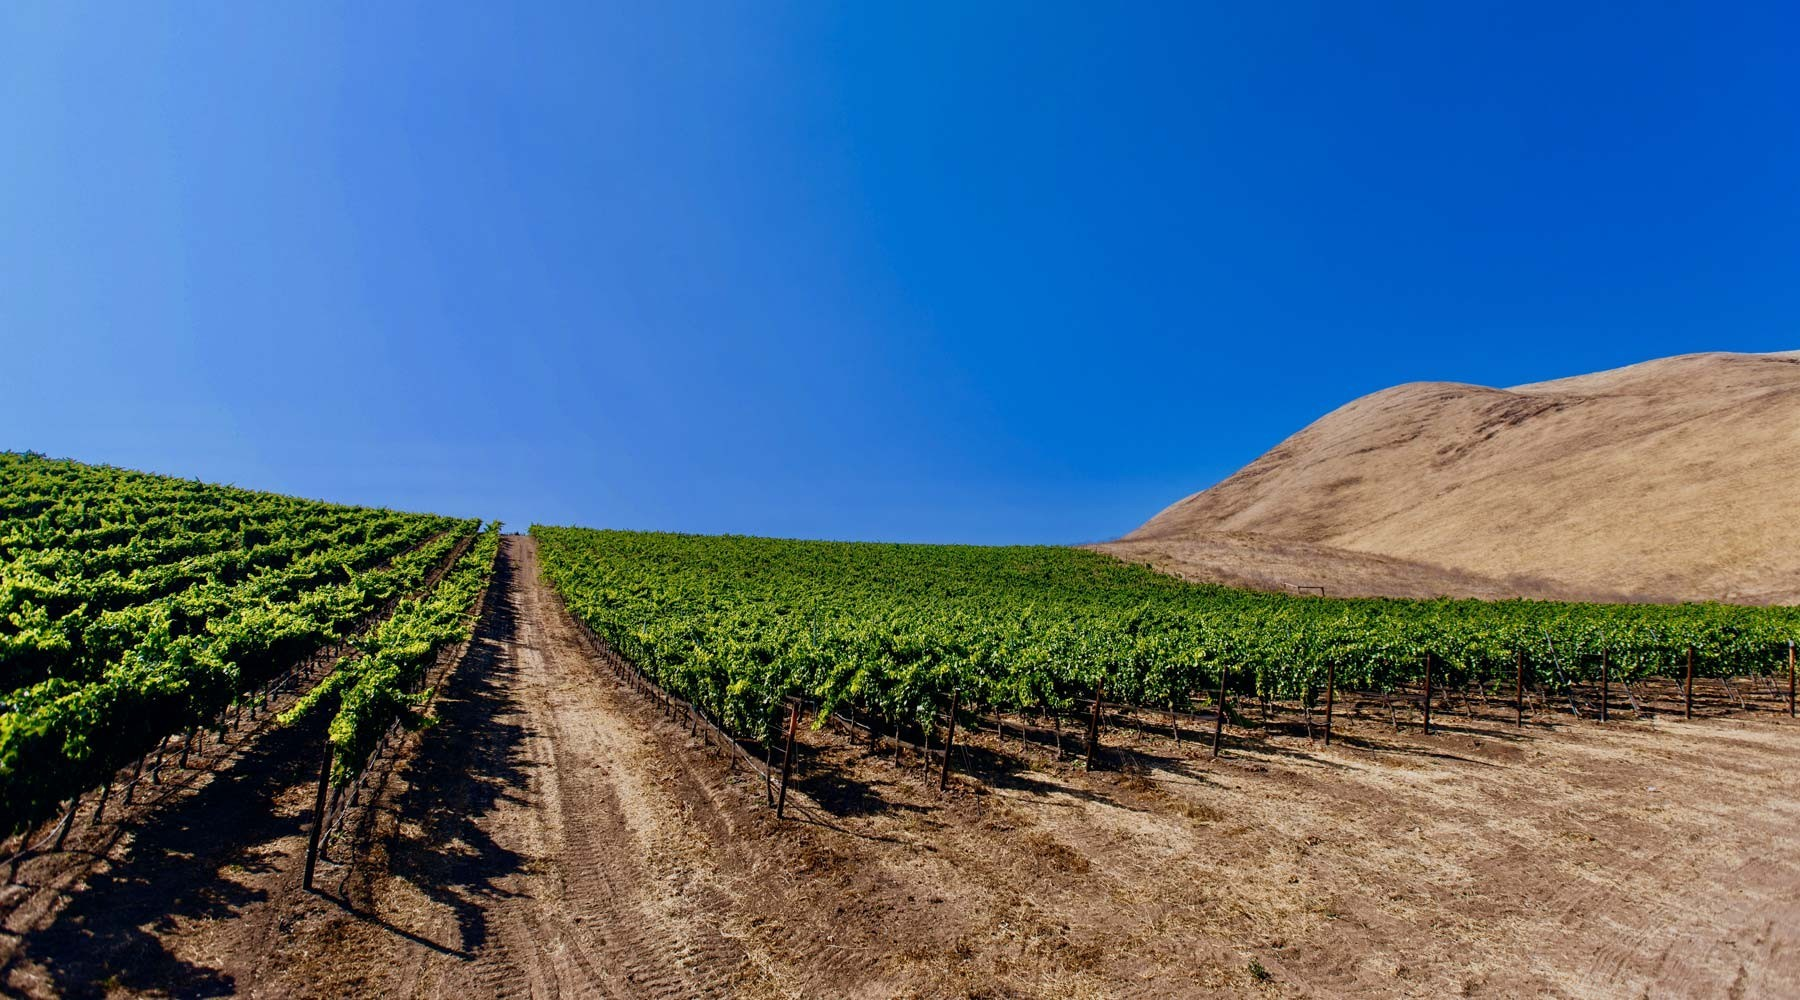 Vineyard horizon photo